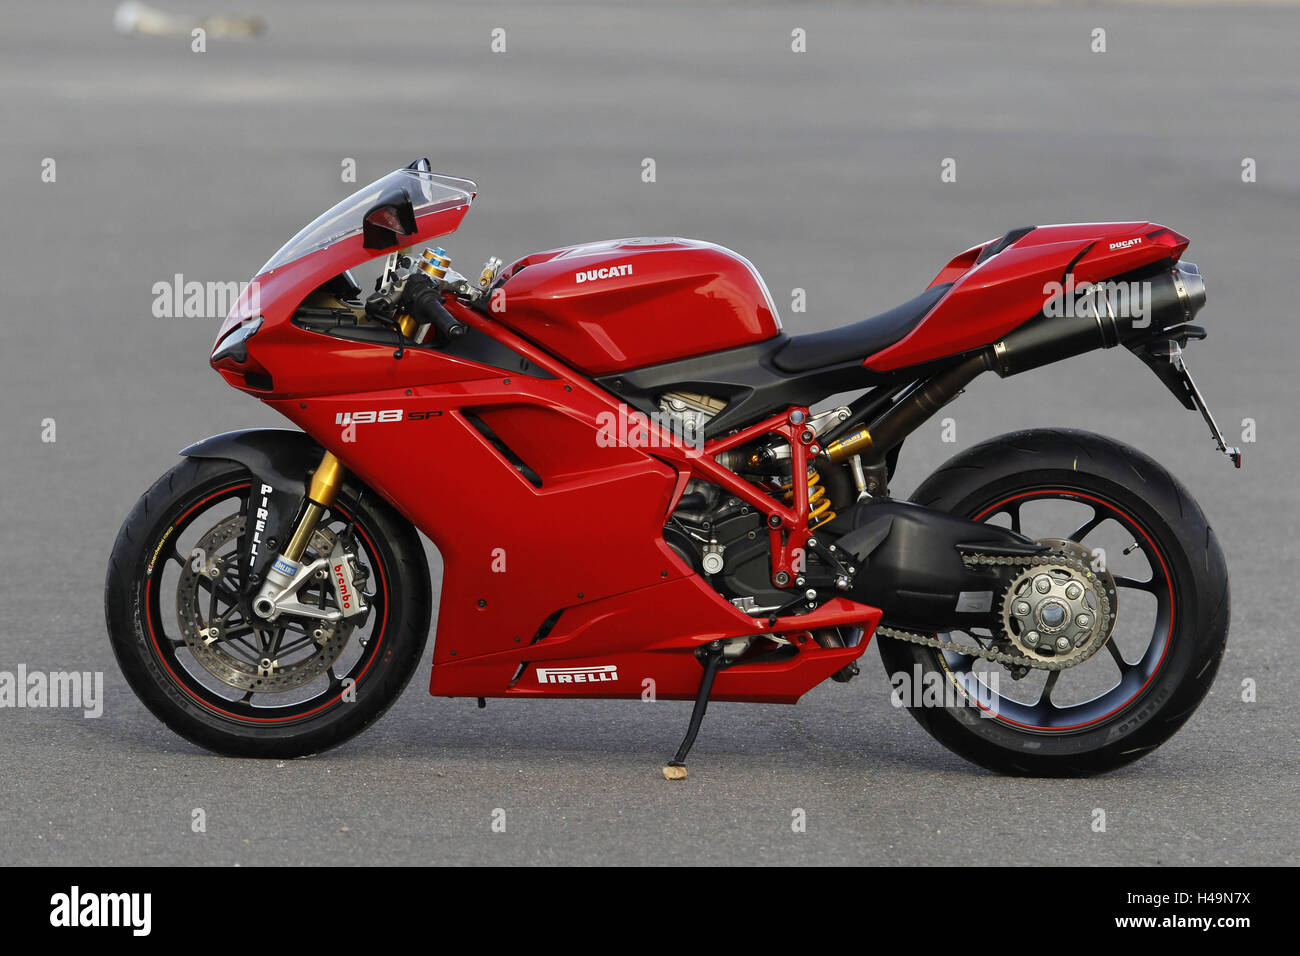 Motorcycle, Ducati 1198 SP, Almeria European 1000cc test, left side,  standing, red,